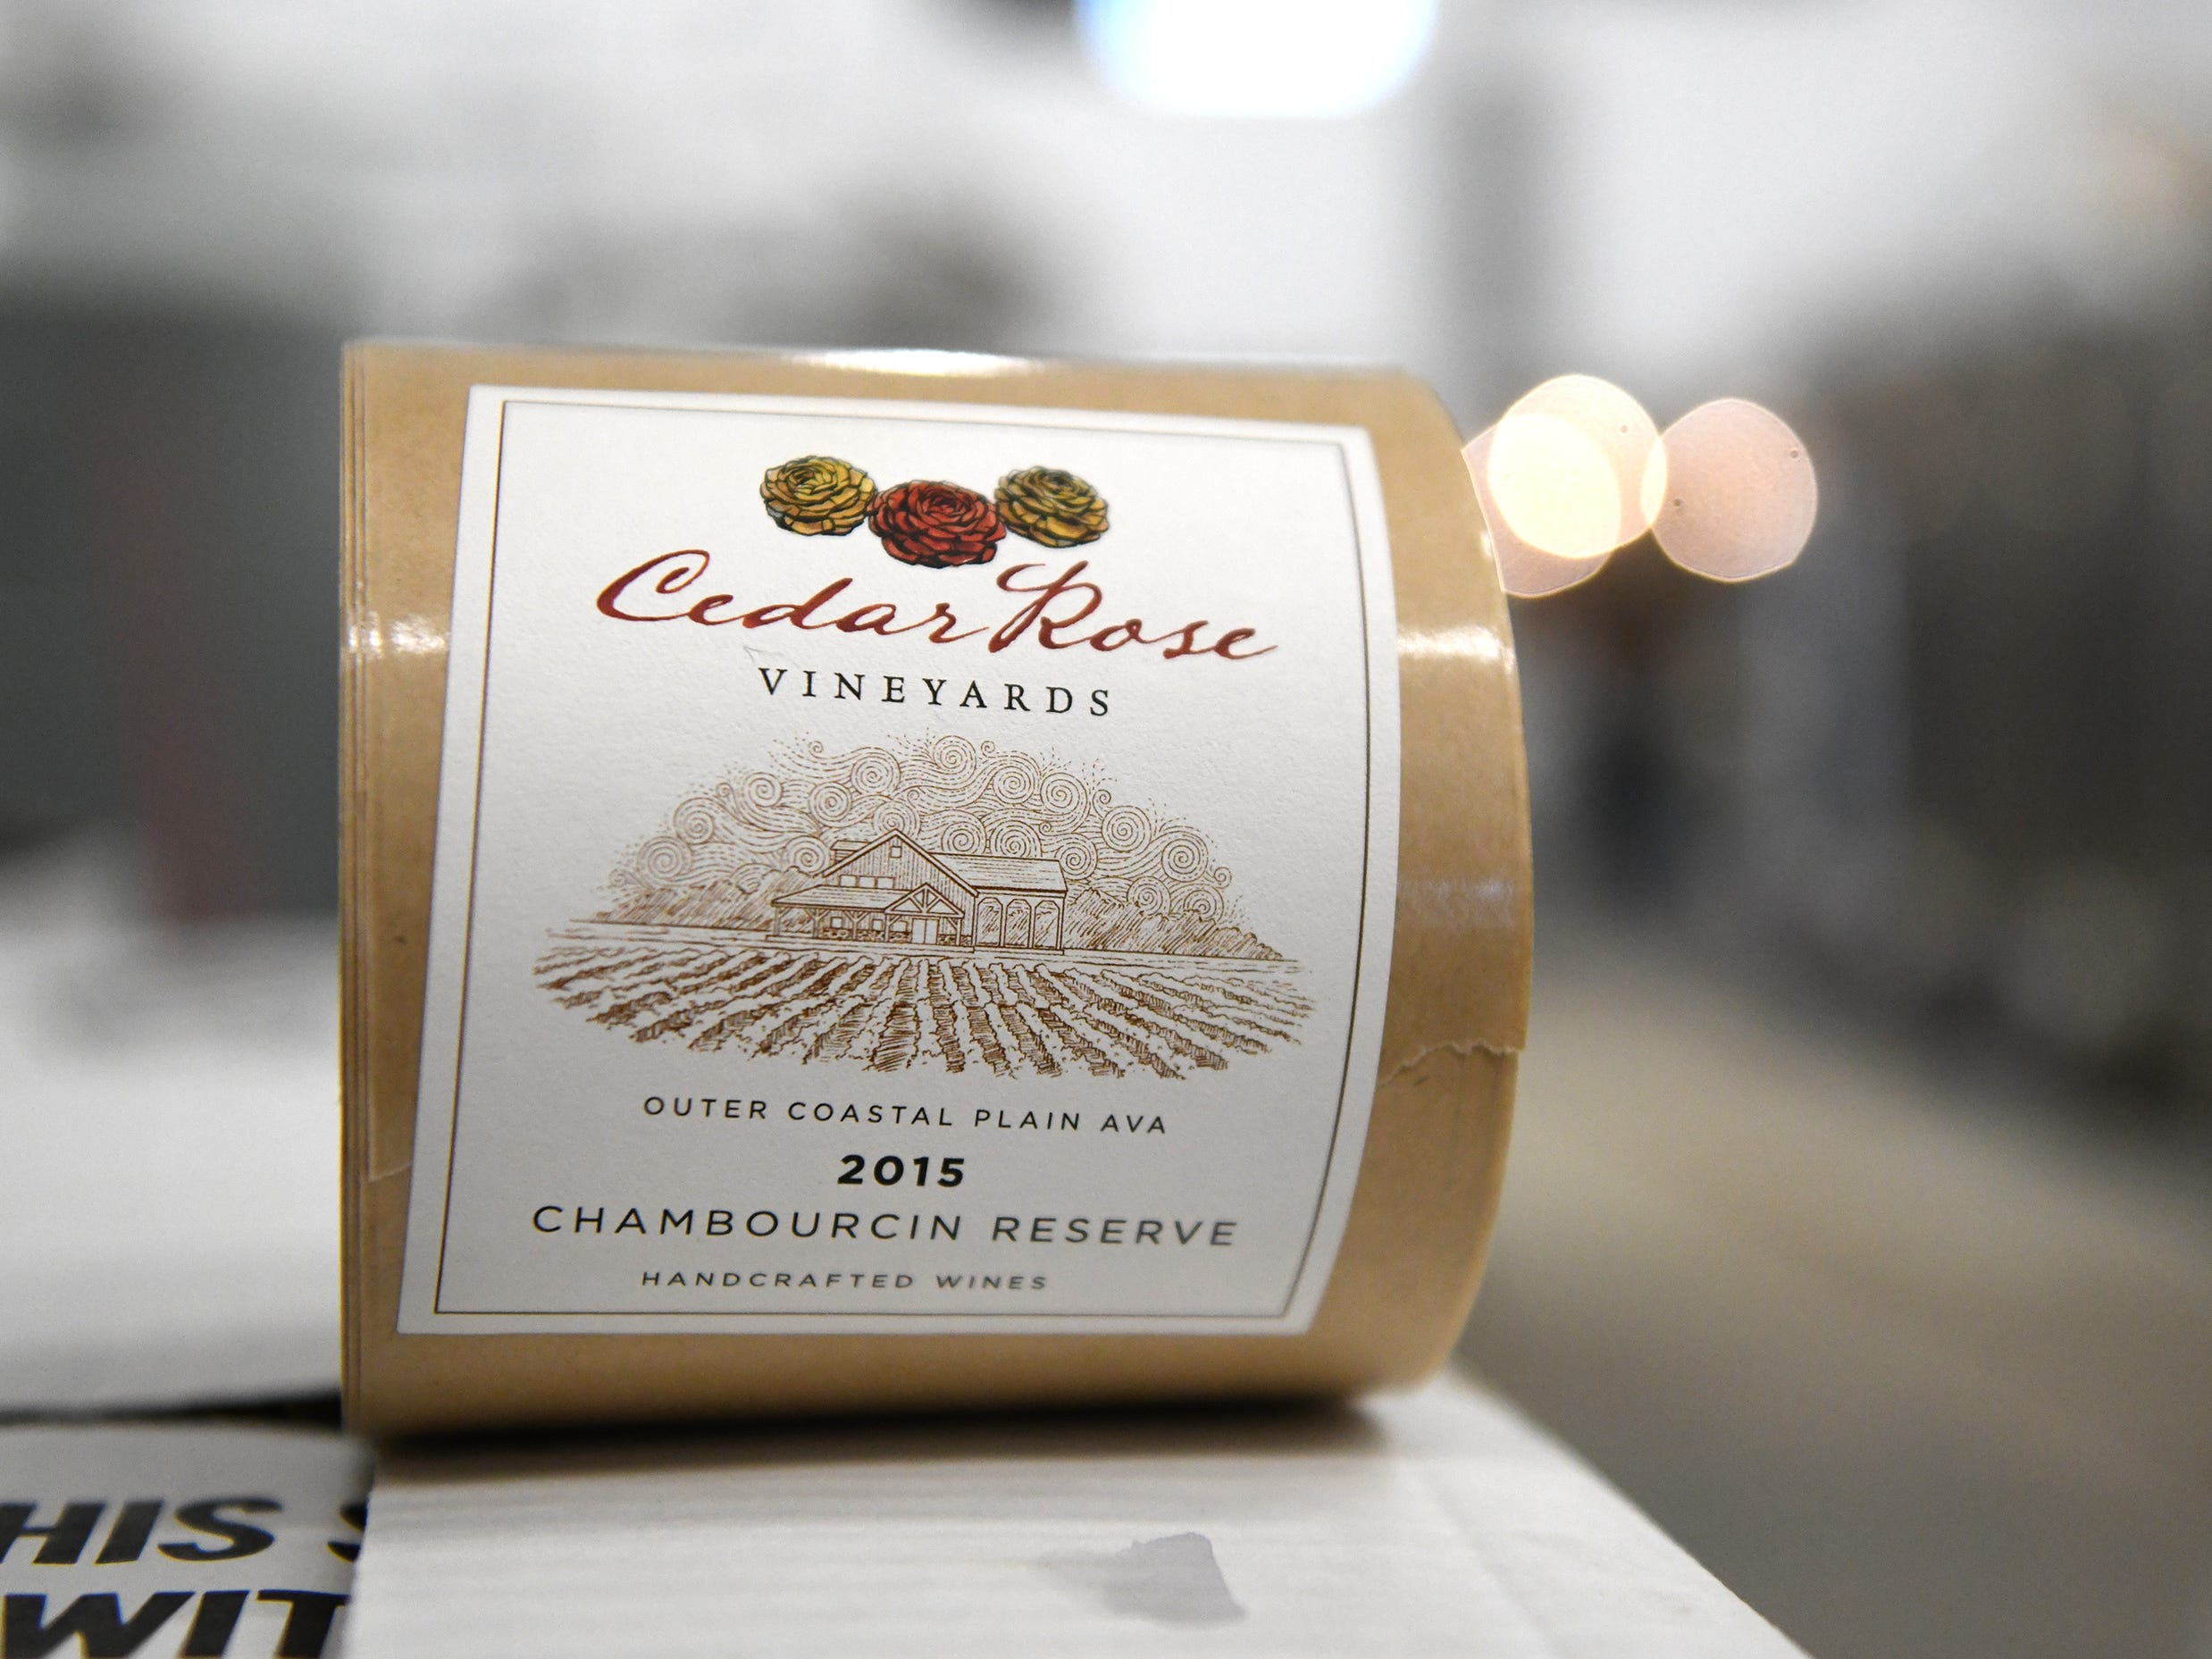 A roll of bottle labels for Cedar Rose Vineyards 2015 Chambourcin Reserve.